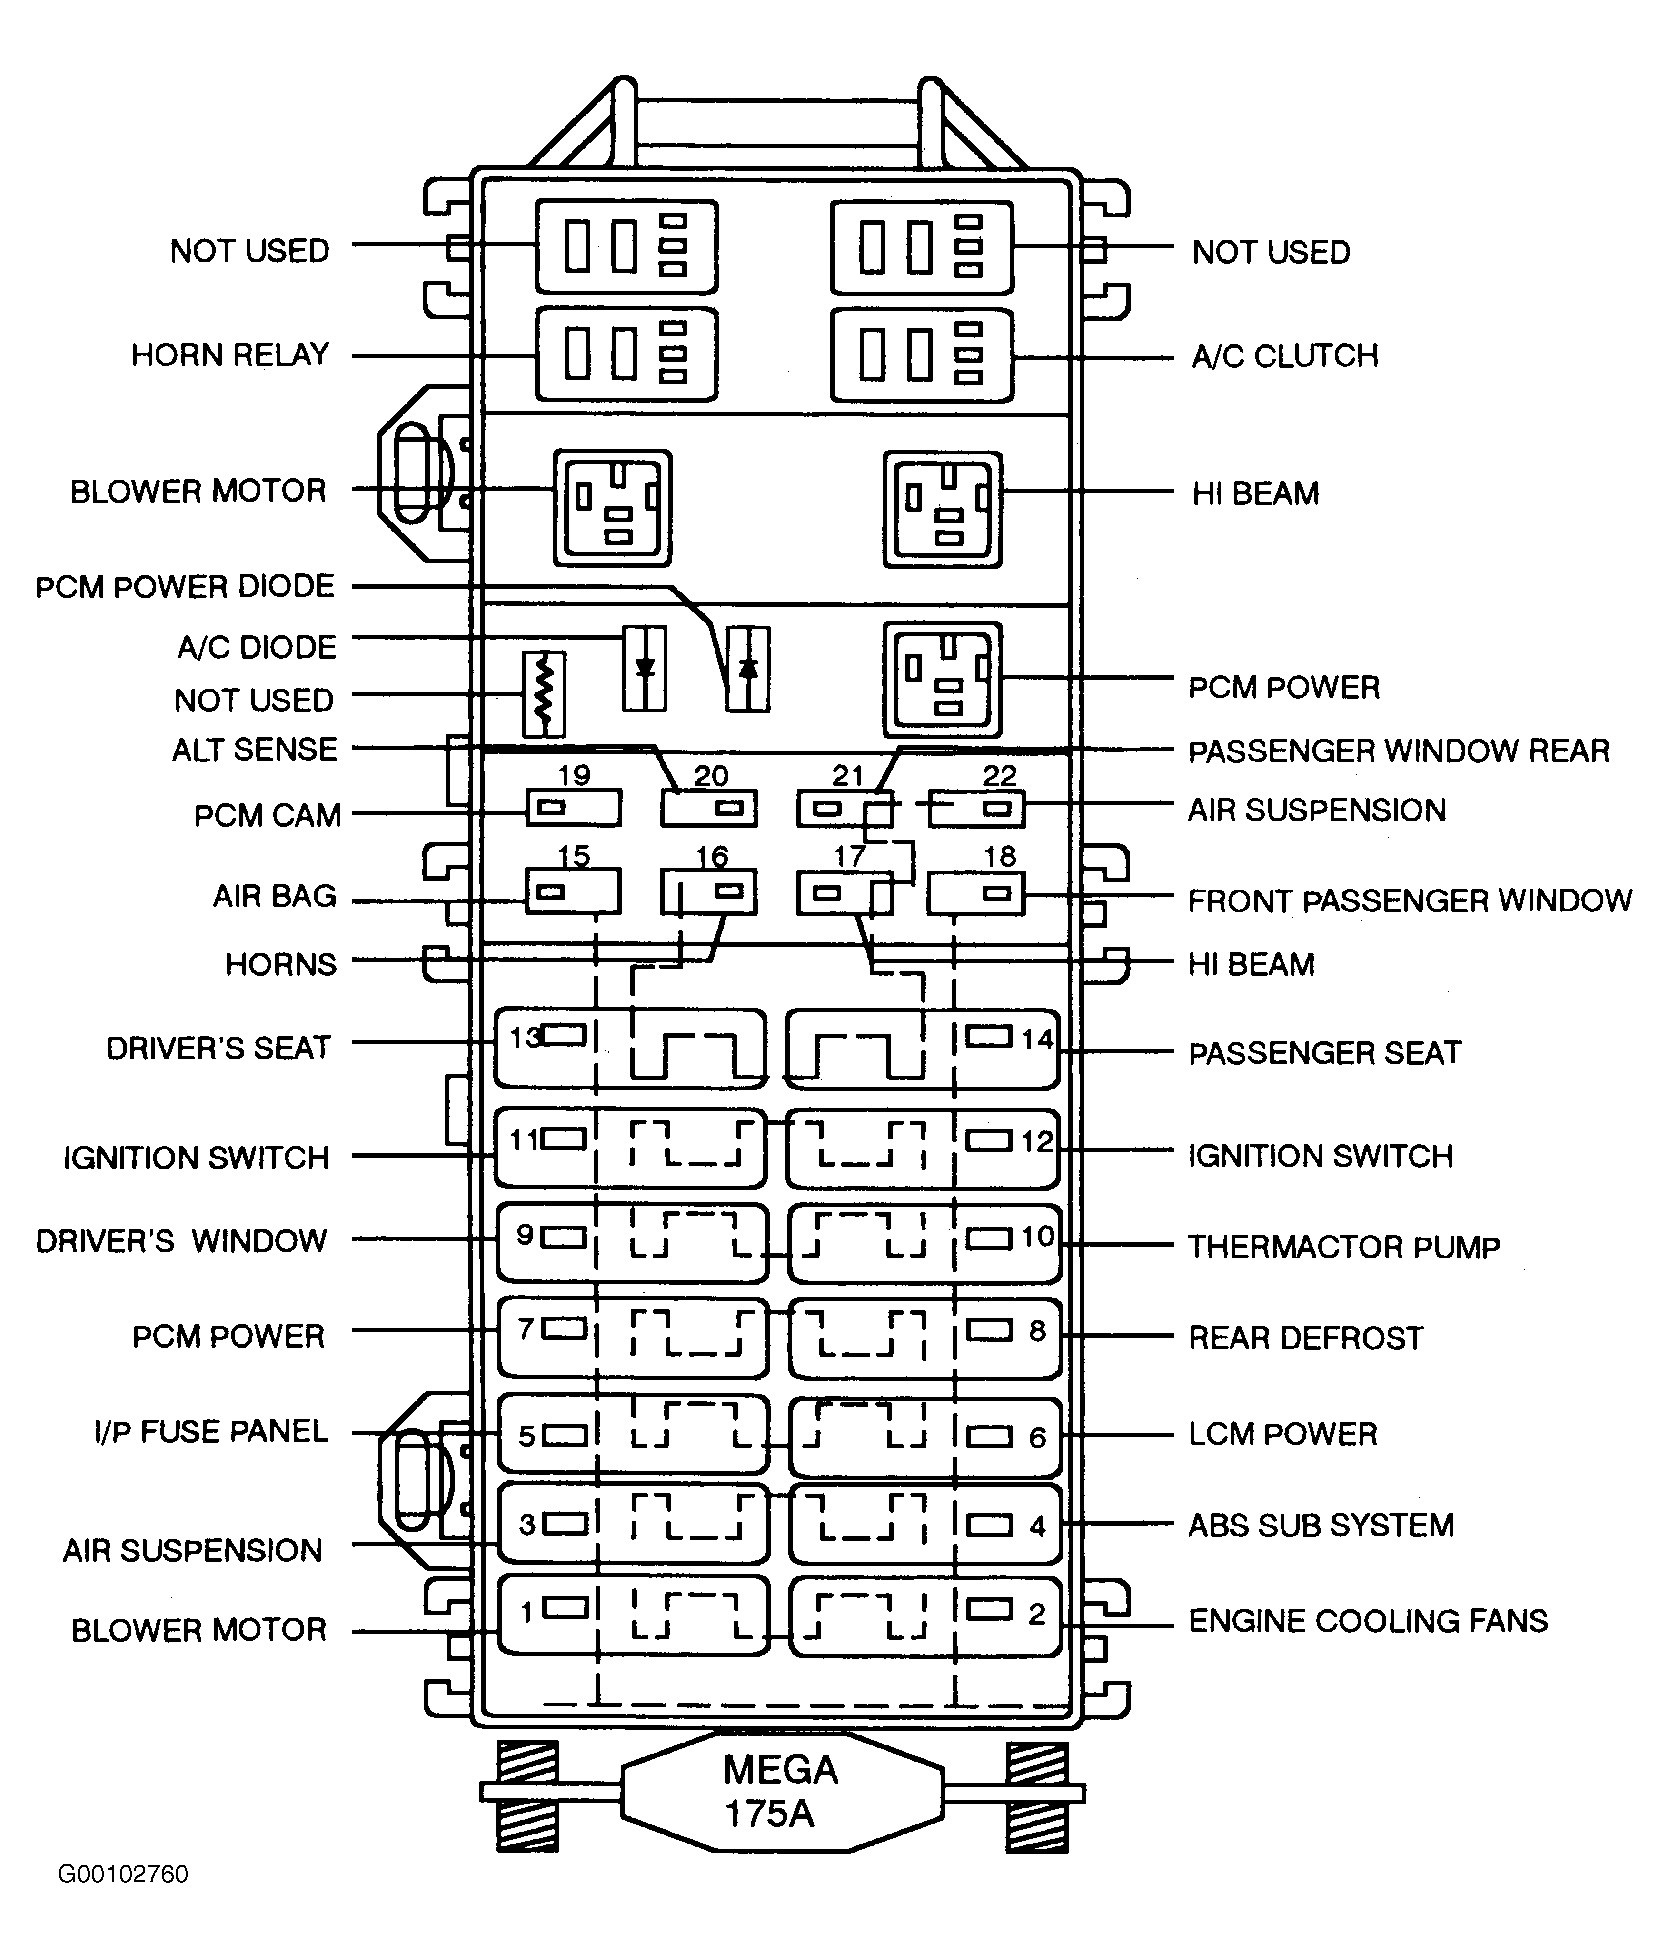 1986 lincoln town car wiring diagram auto electrical. Black Bedroom Furniture Sets. Home Design Ideas